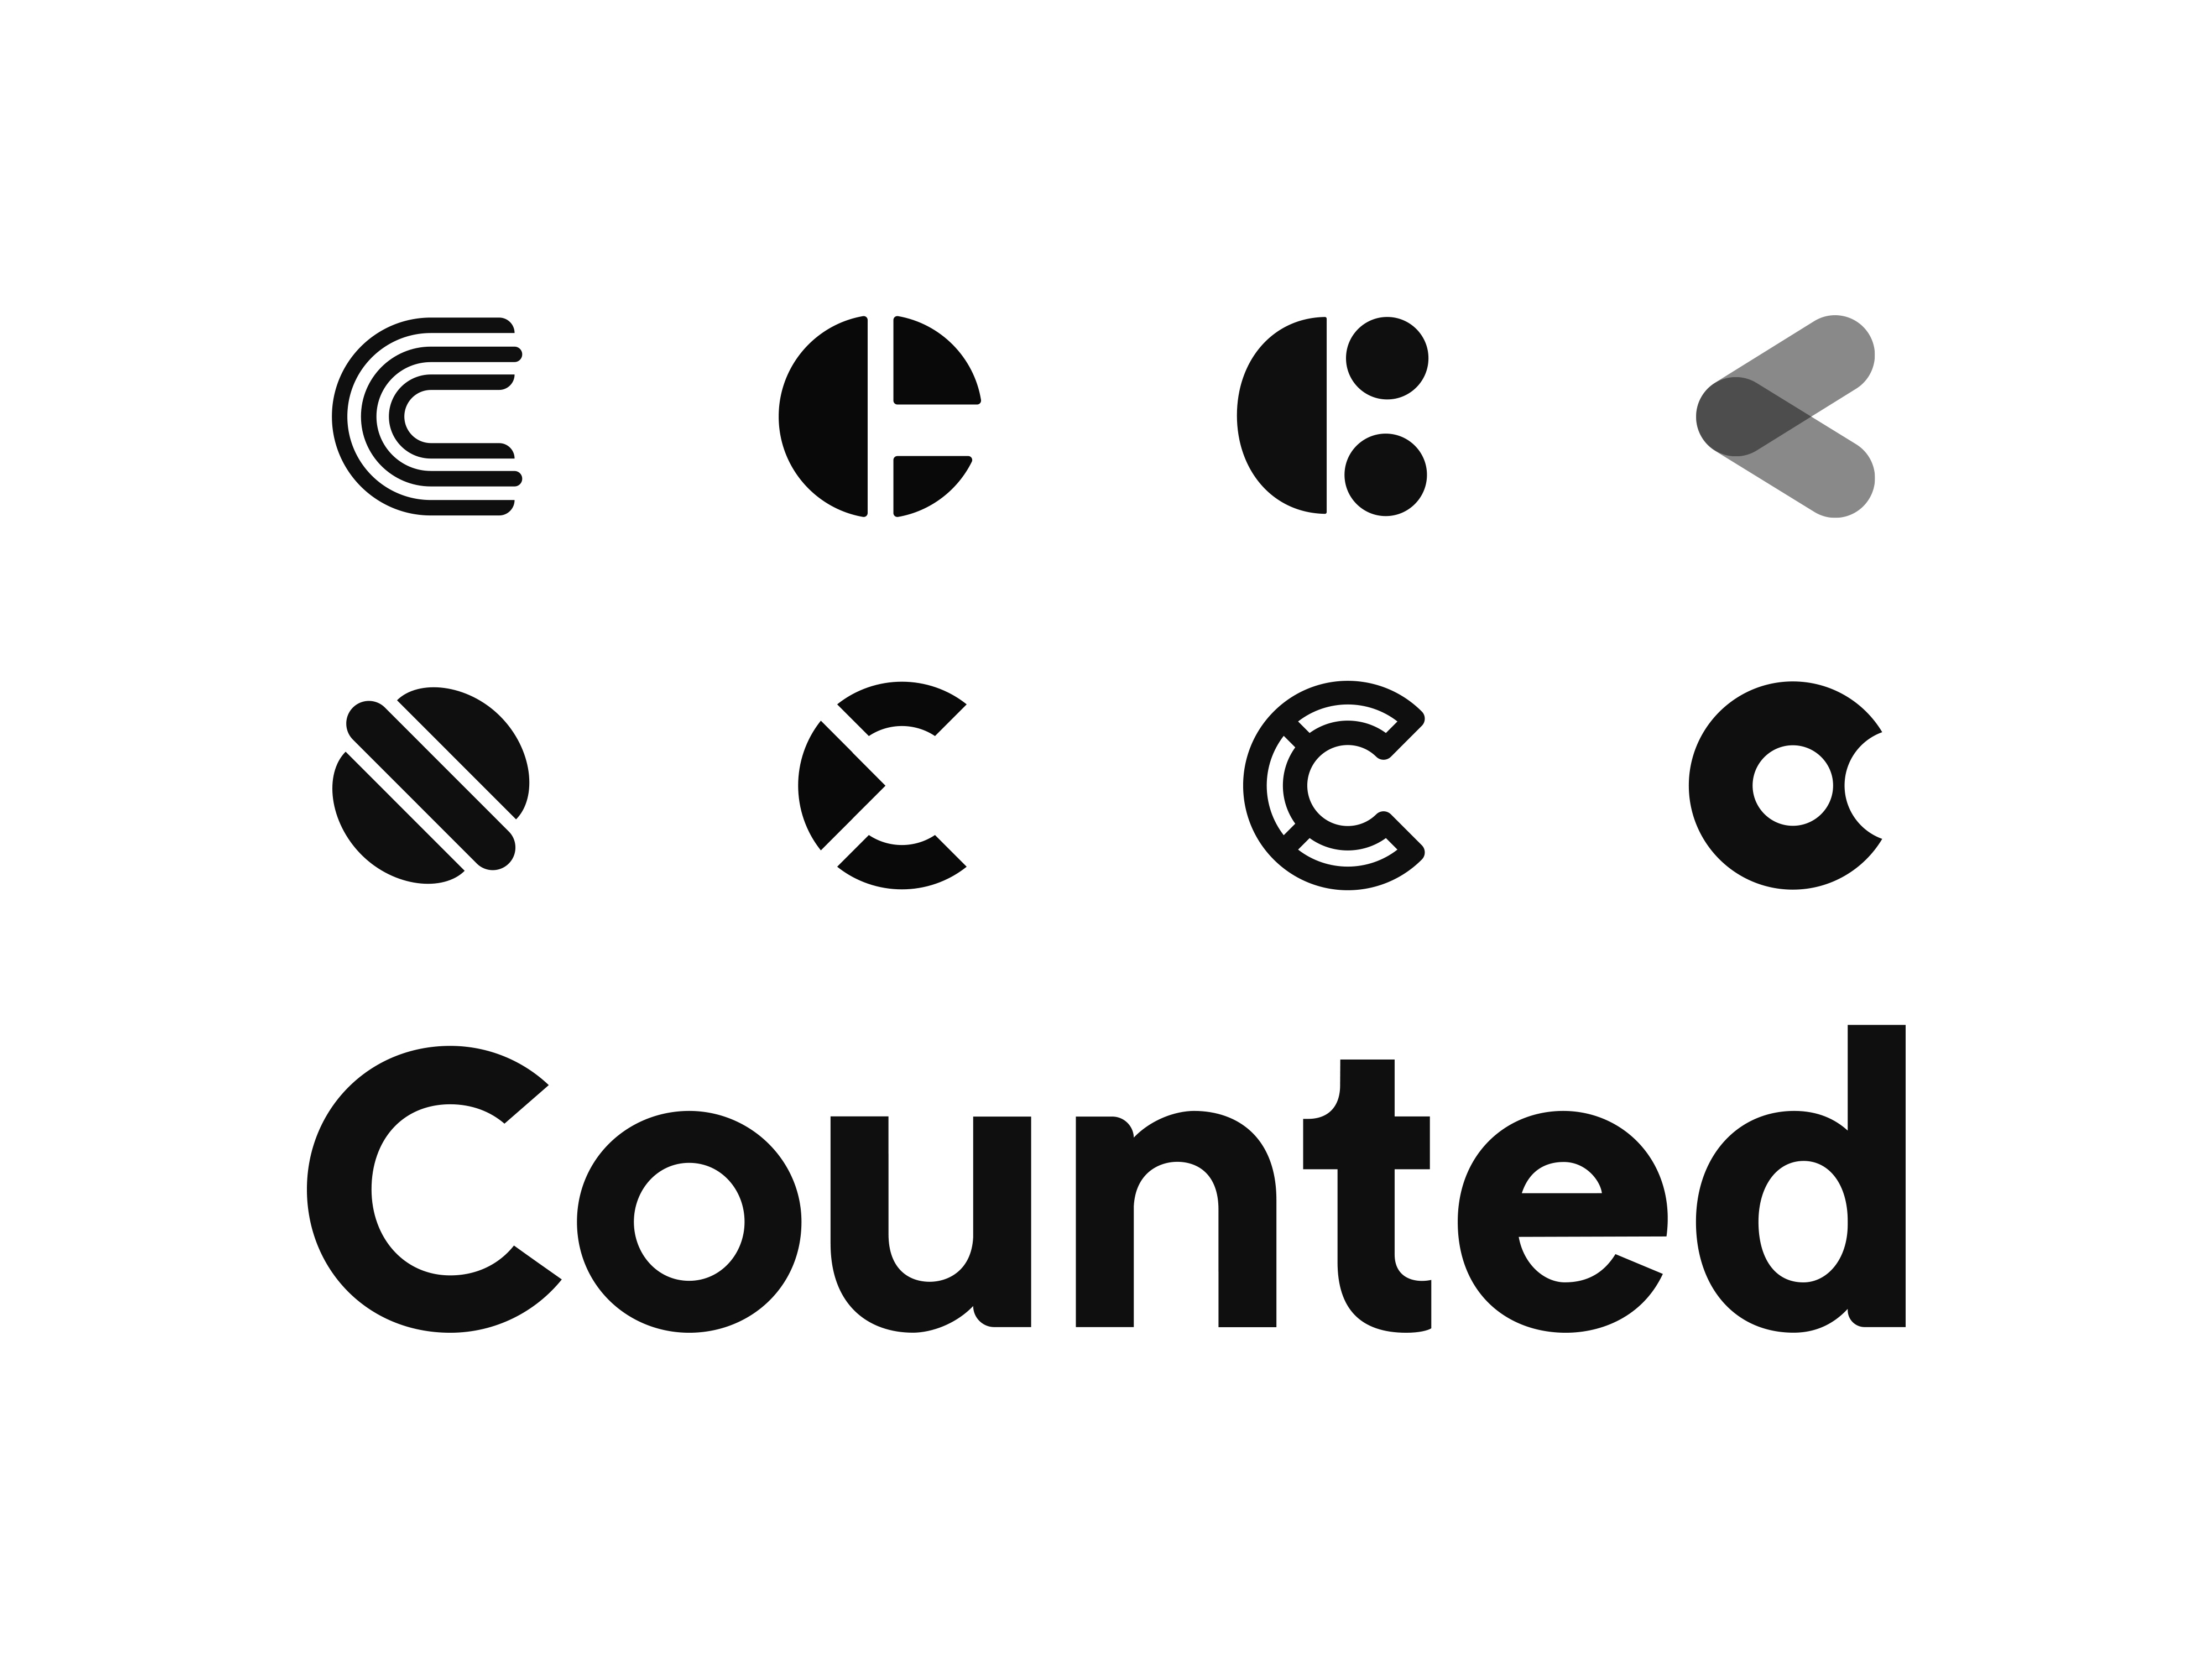 First logo variations attachment